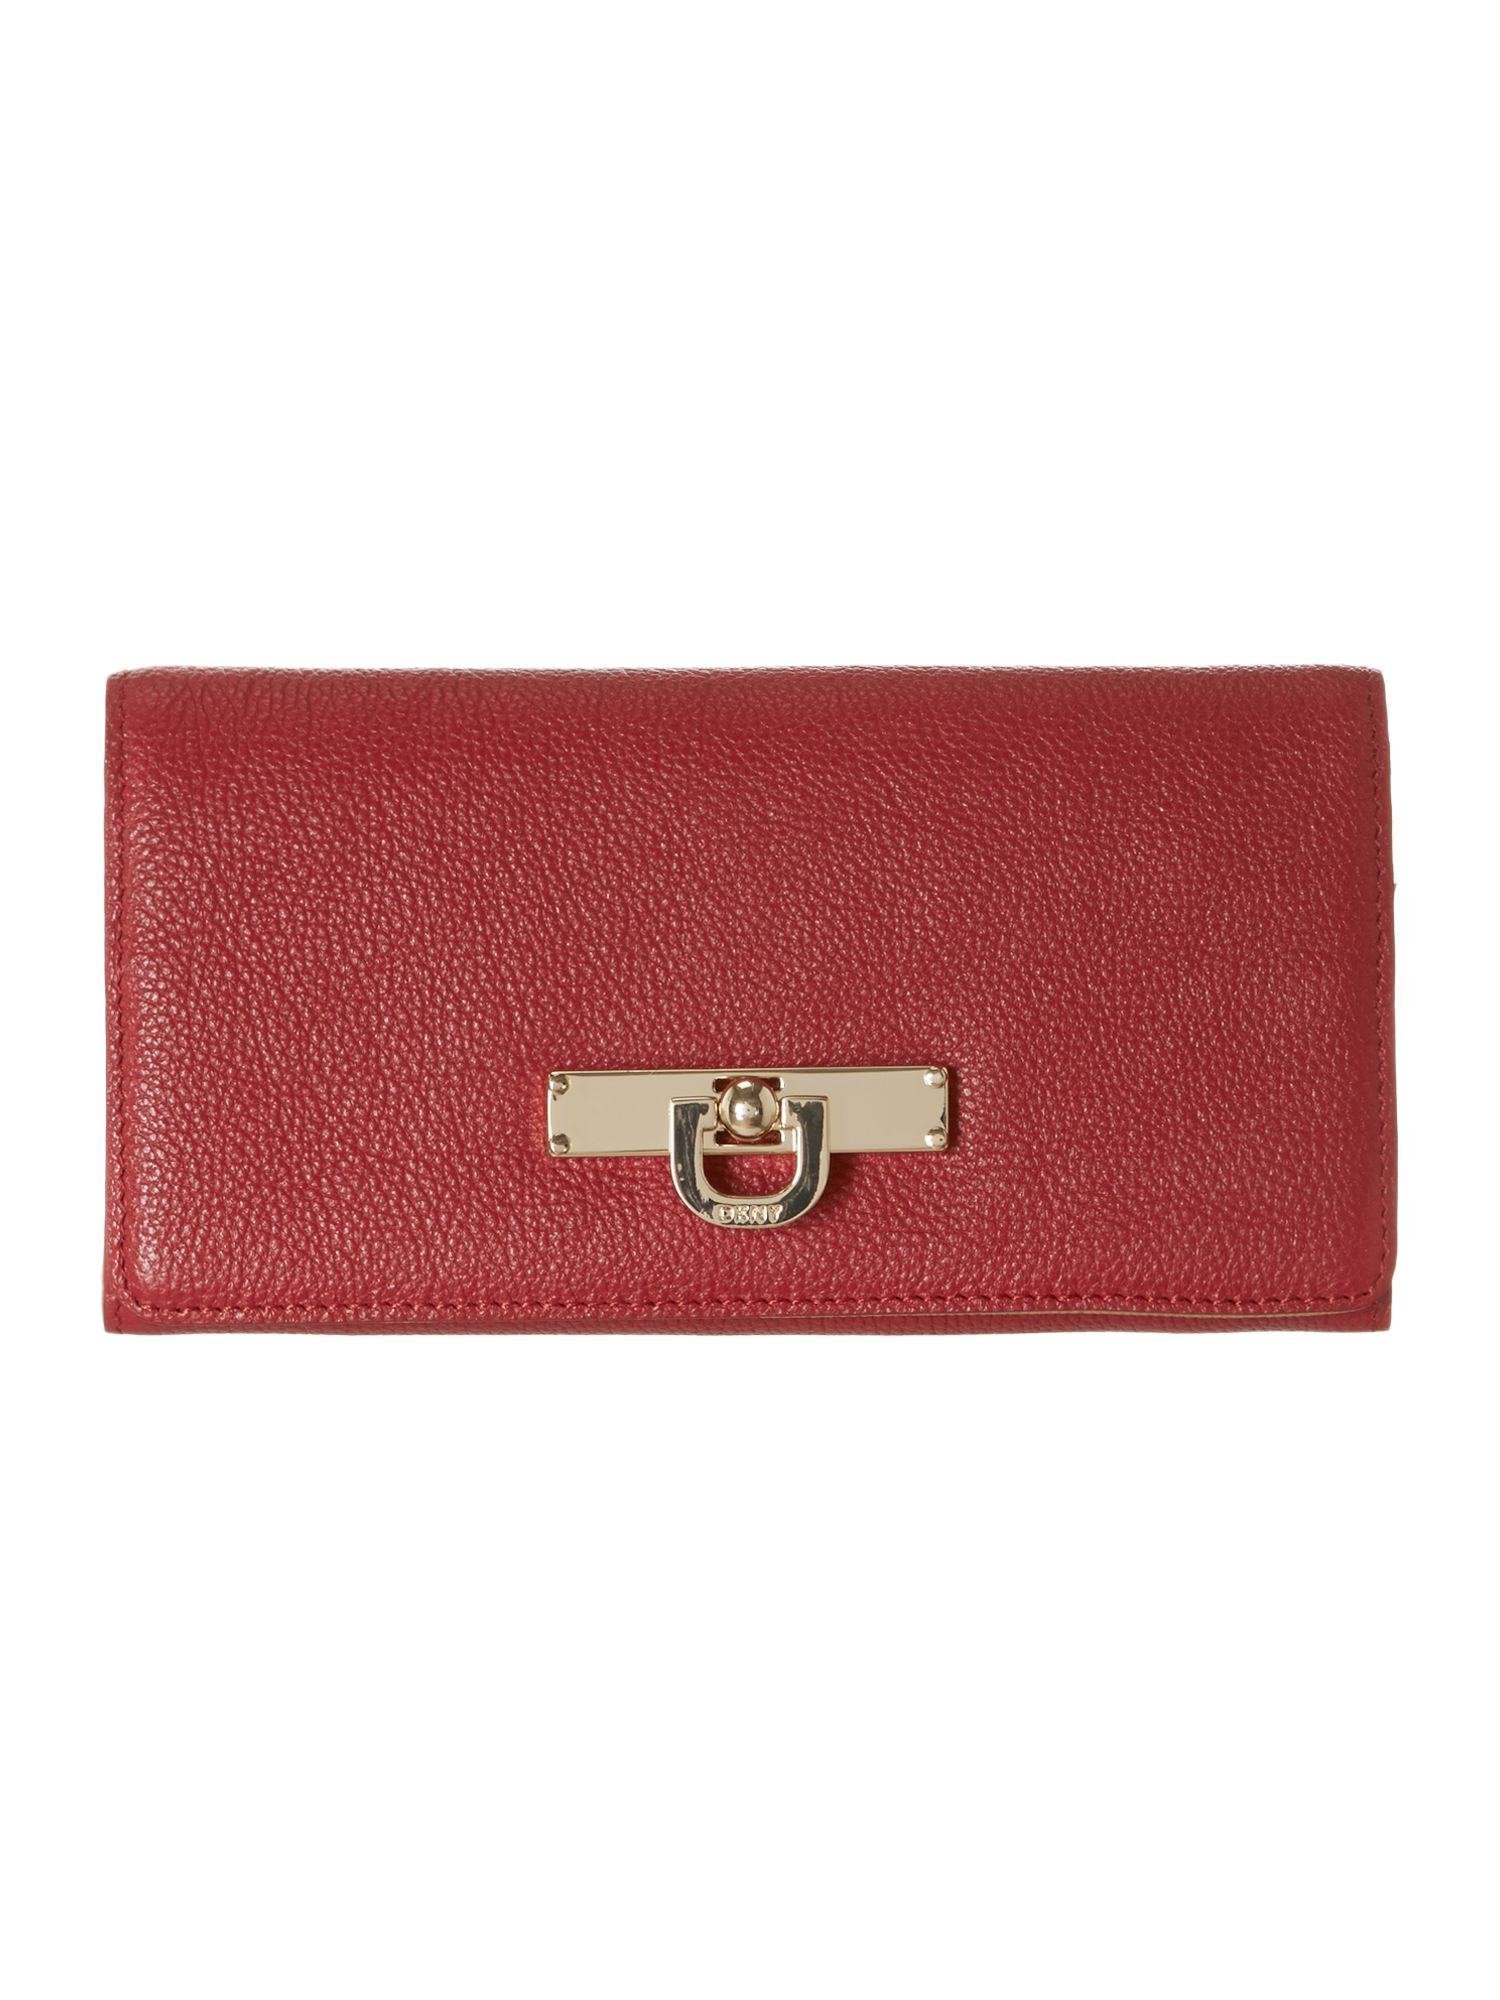 Saffiano red large flapover